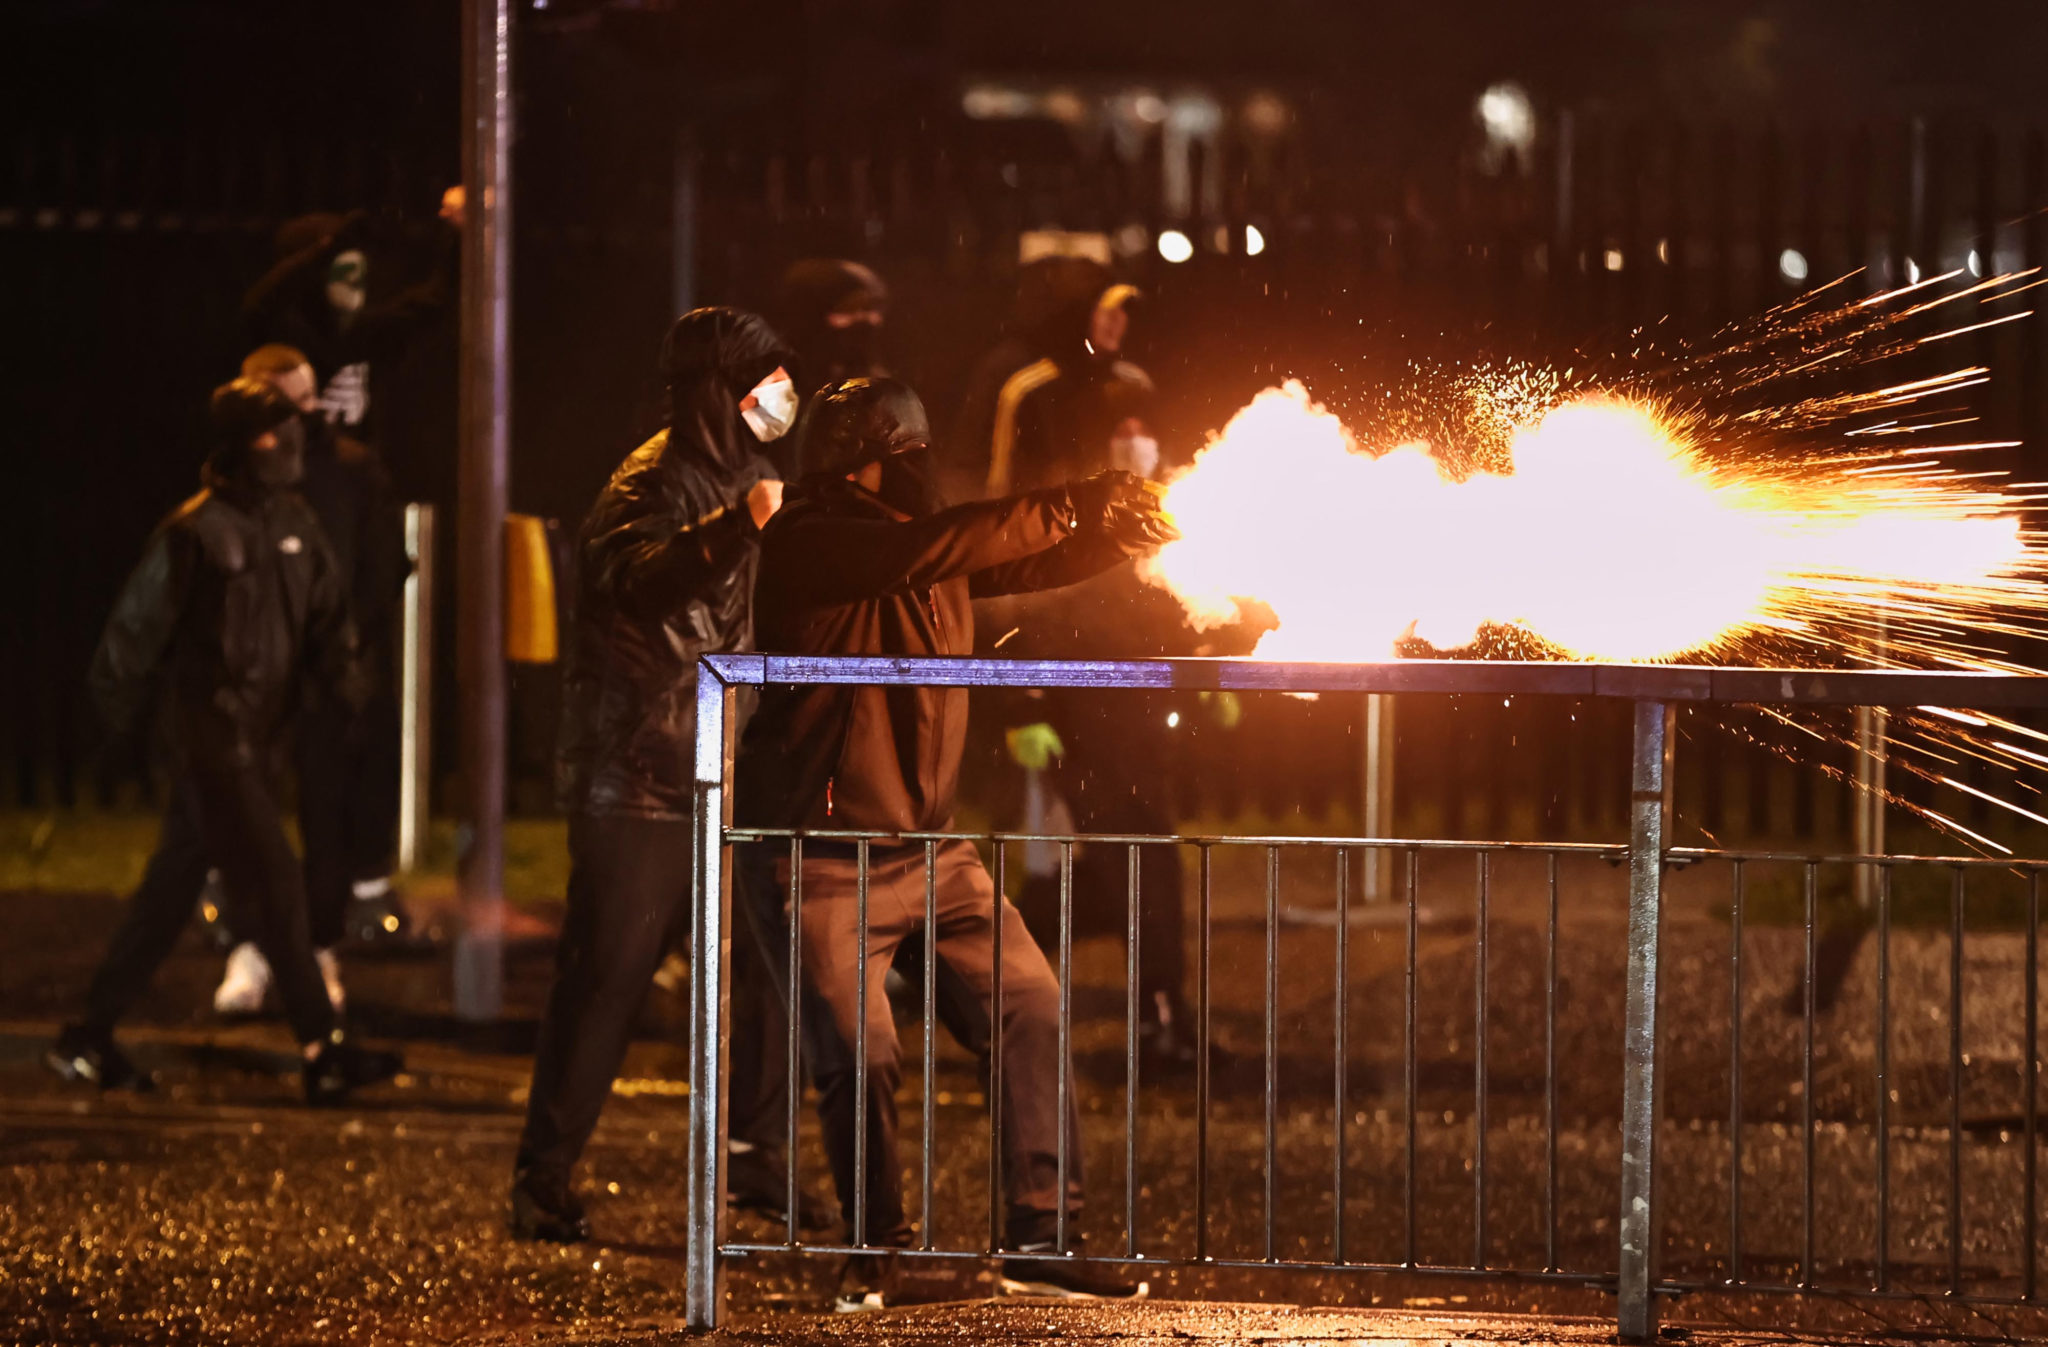 Youths fire fireworks at the PSNI on the Springfield road, during unrest in Belfast